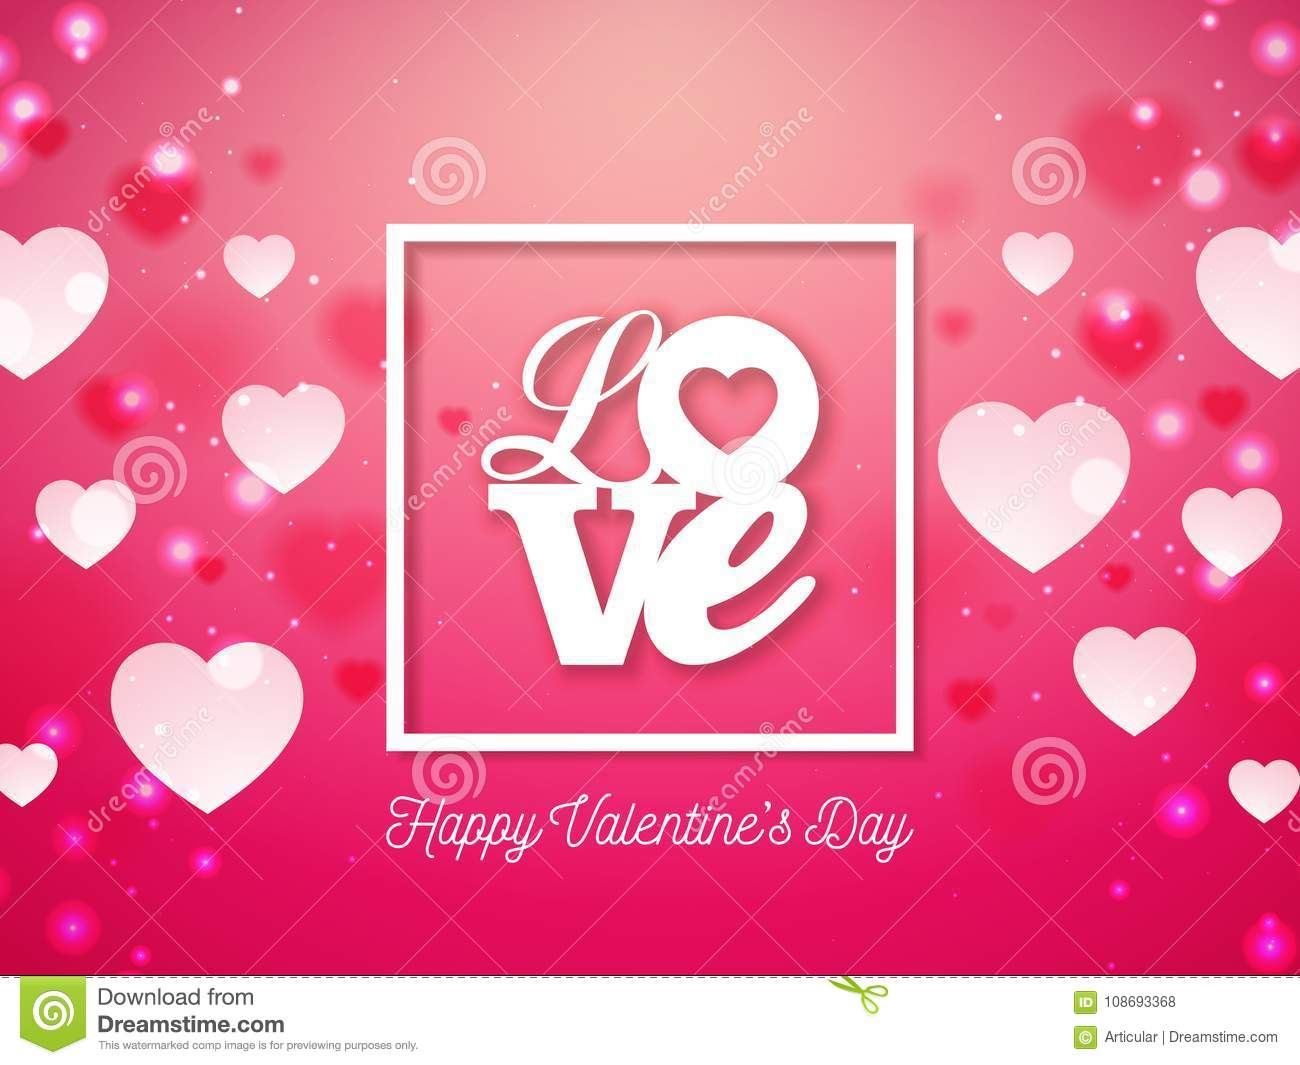 Valentines Day Design With Heart And Love Typography Letter On Shiny